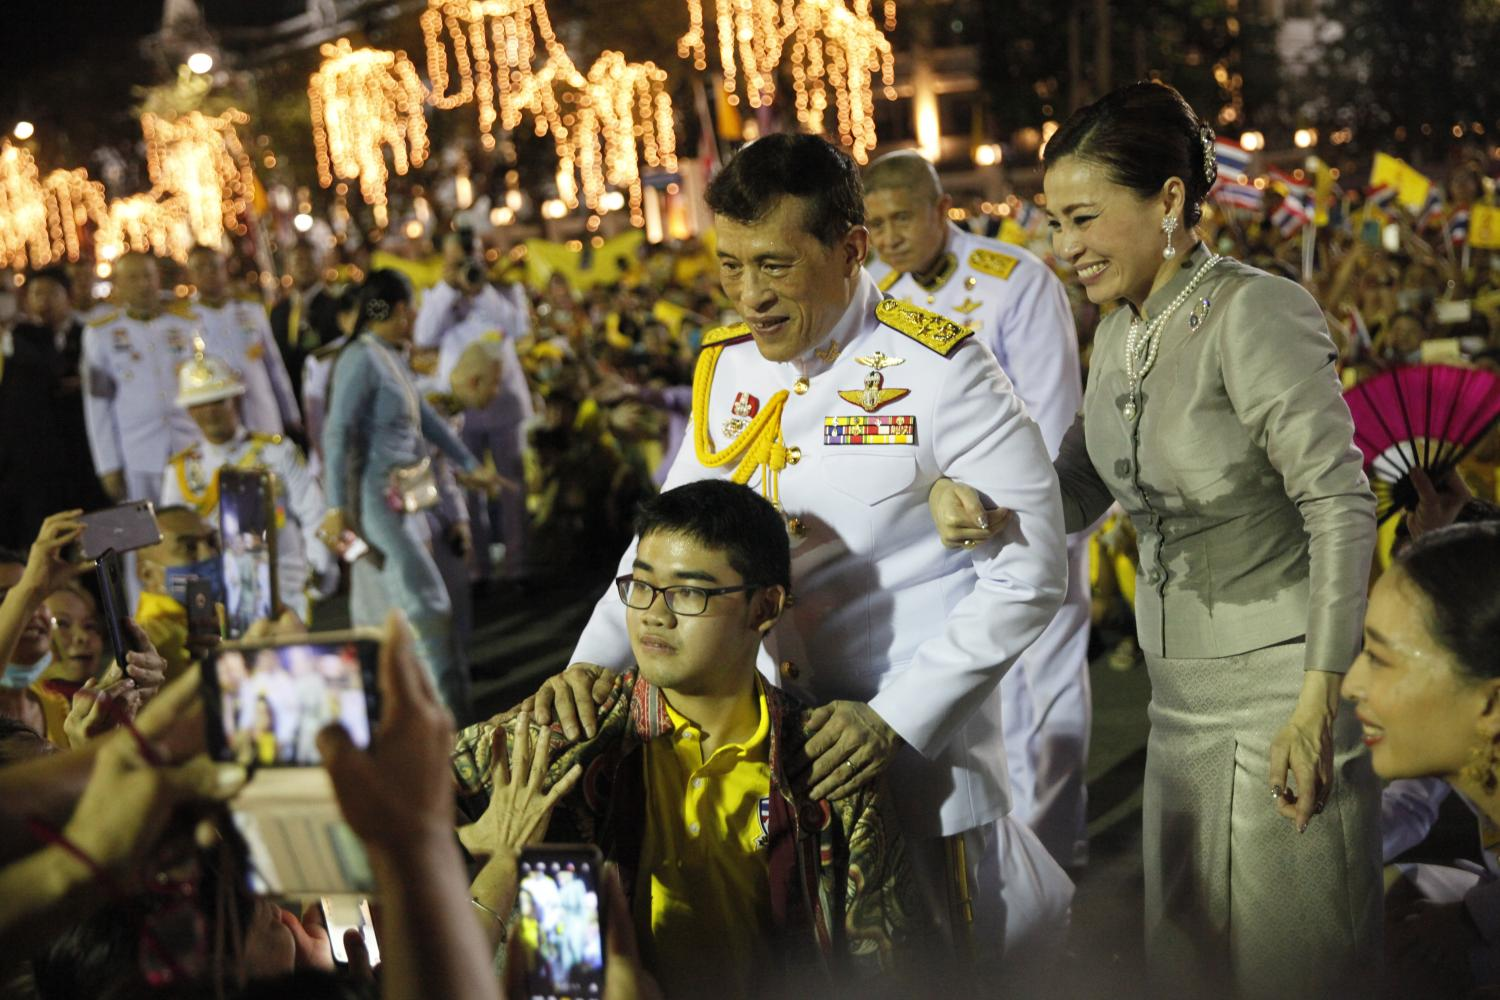 Their Majesties the King and the Queen allow a Mathayom 4 student from Wat Ratchabophit School to take a selfie with them while they greeted a royalist crowd outside the Grand Palace on Sunday night. (Photo by Wichan Charoenkiatpakul)